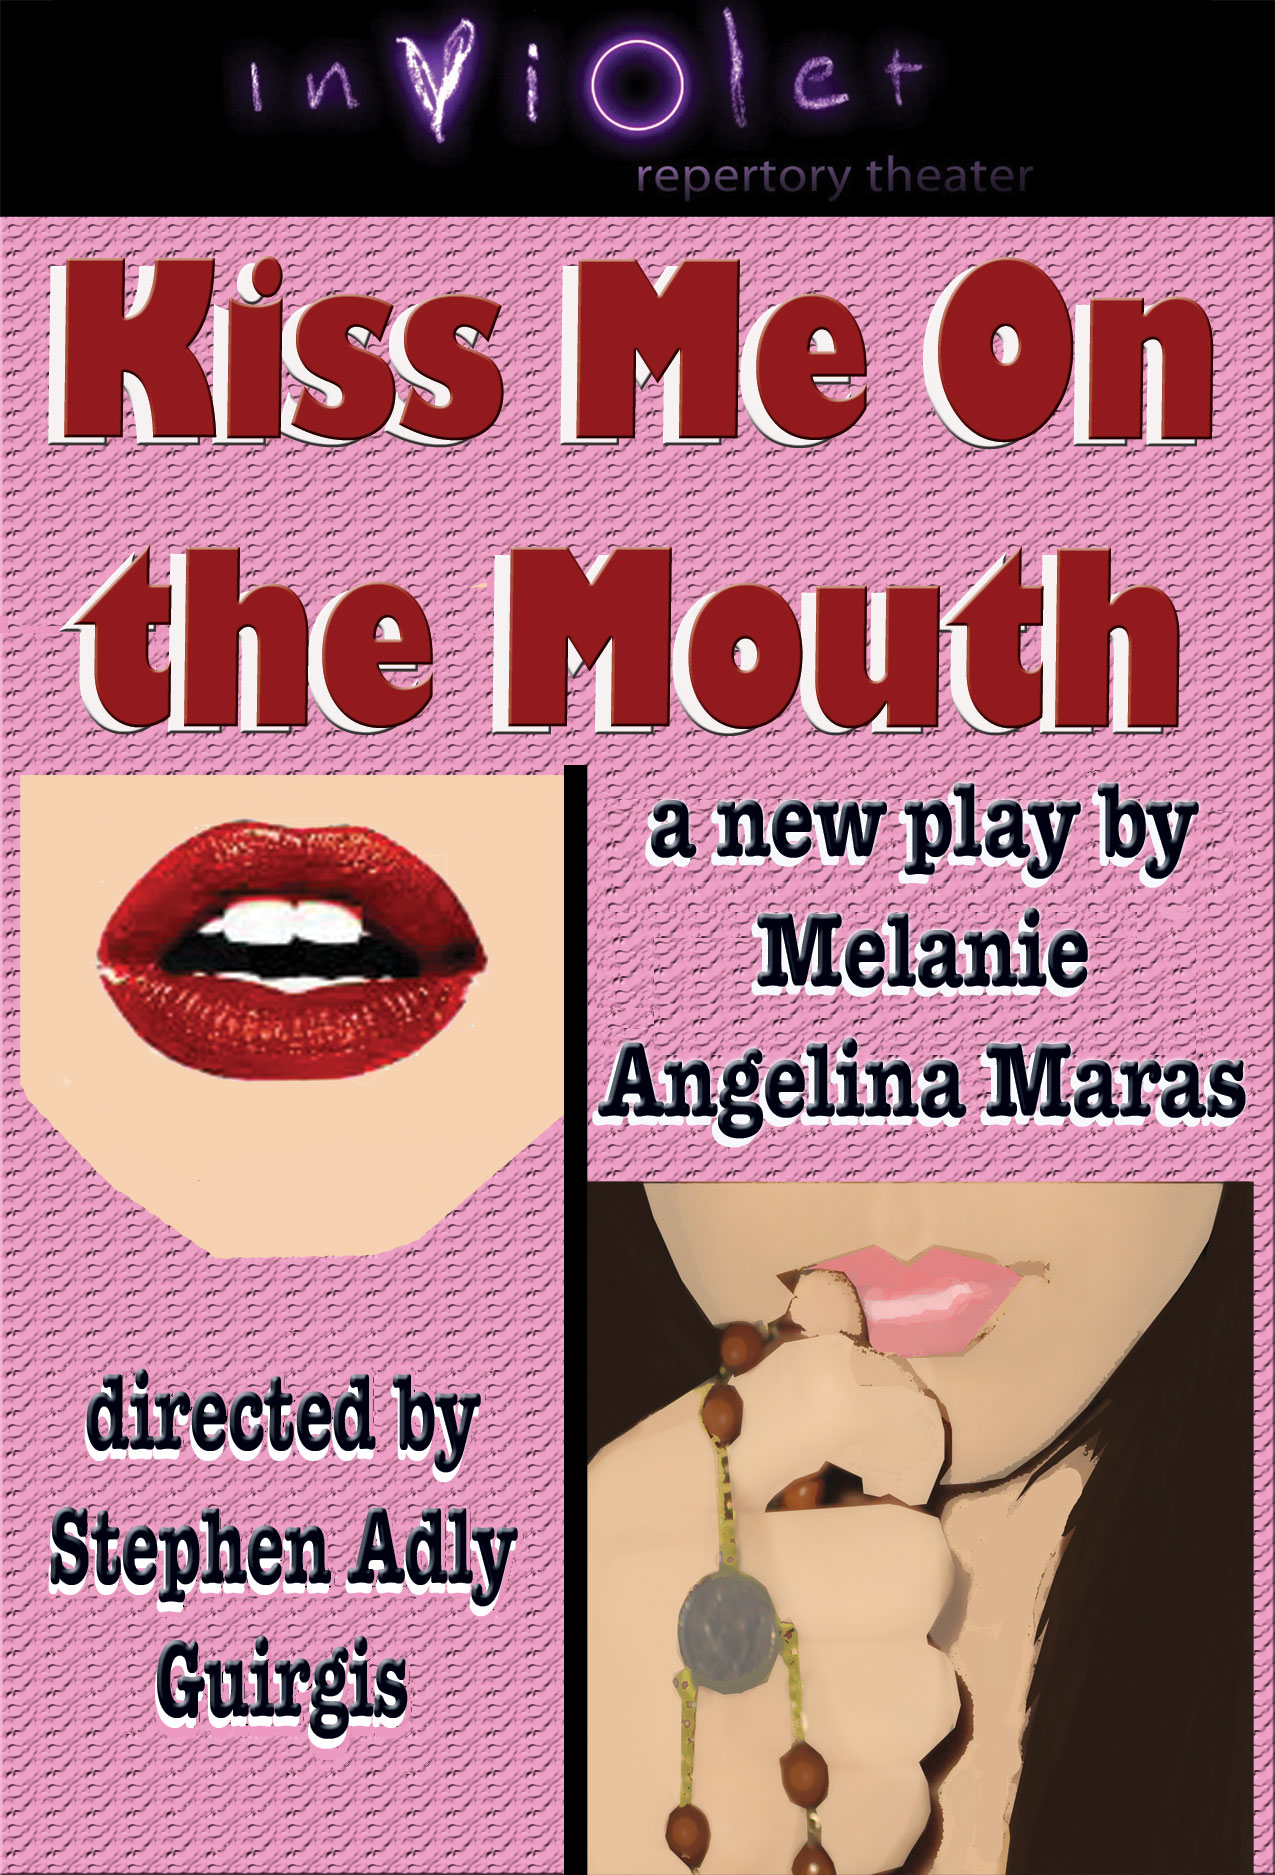 Kiss Me Graphic